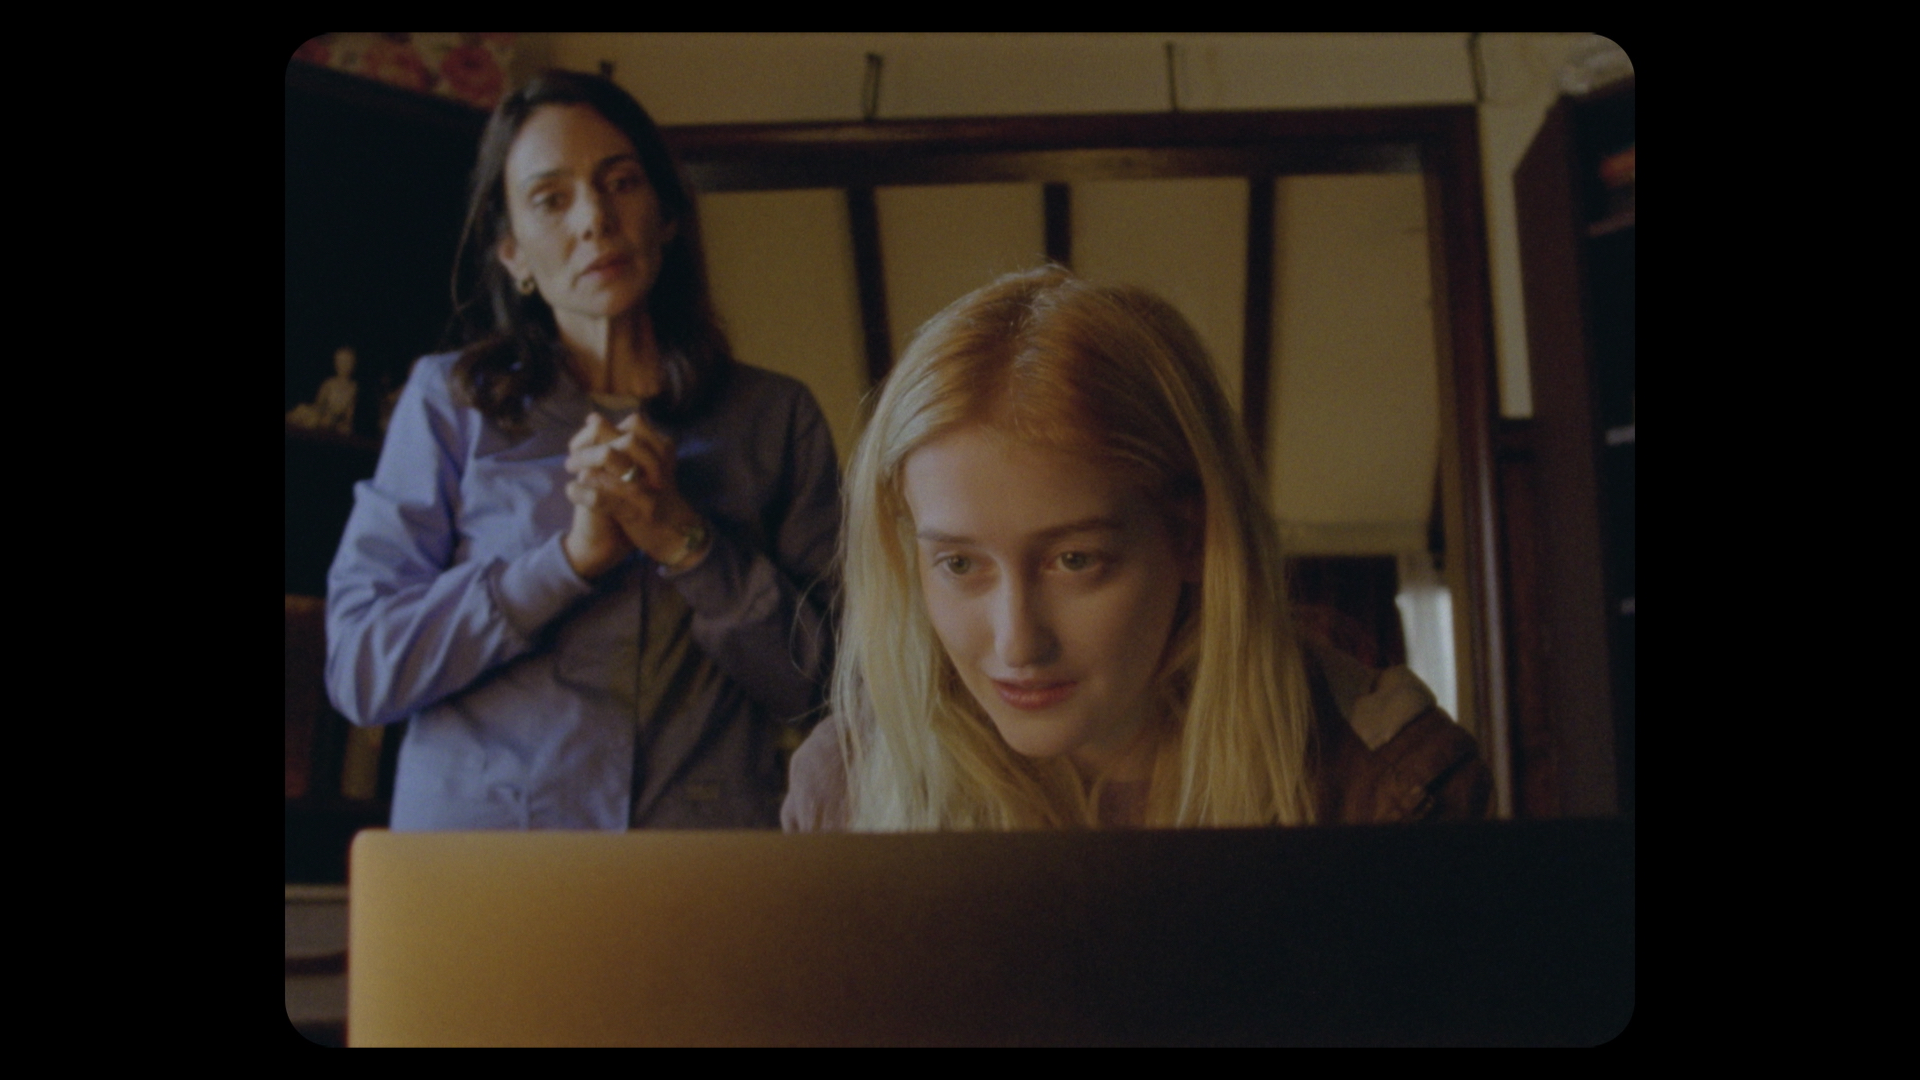 A young blonde woman sits behind a computer, smiling. An older brunette woman stands behind her, wearing a blue shirt. They are in an office space.